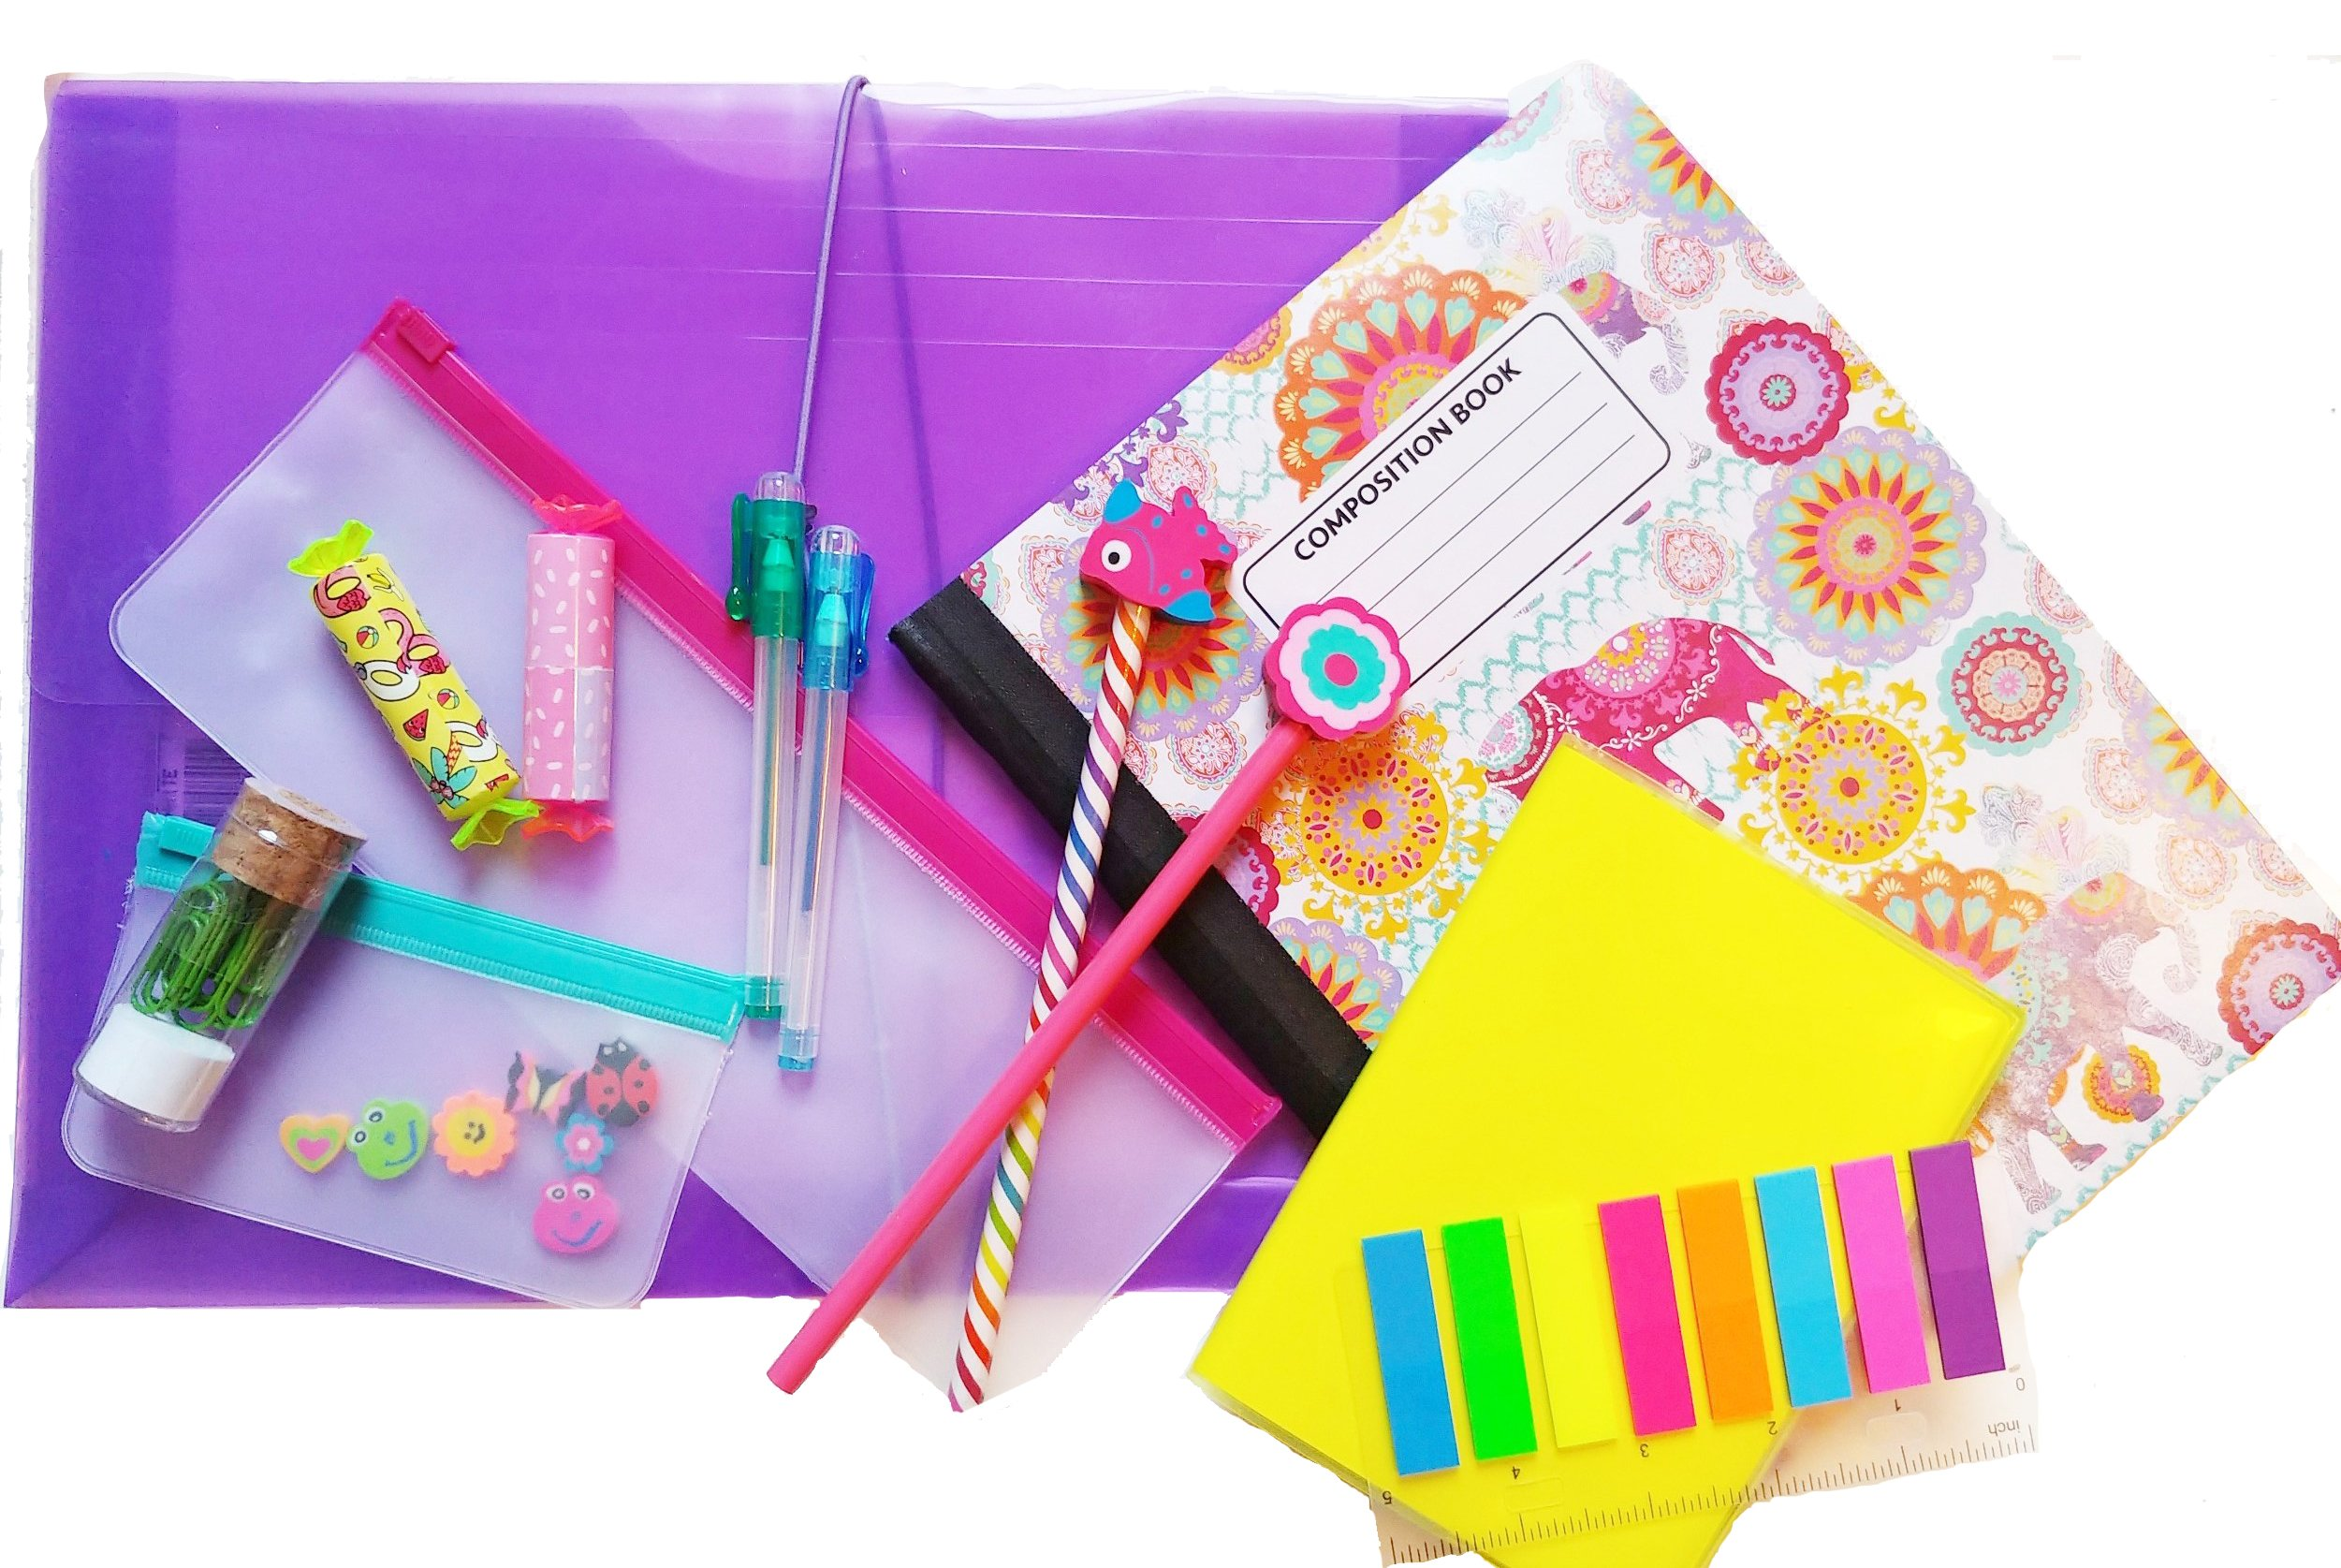 School or Office Supplies Set: Notebooks, Pens, Pencils, Folders, Sticky Tabs, Erasers, Paper Clips, 19 Piece Set!